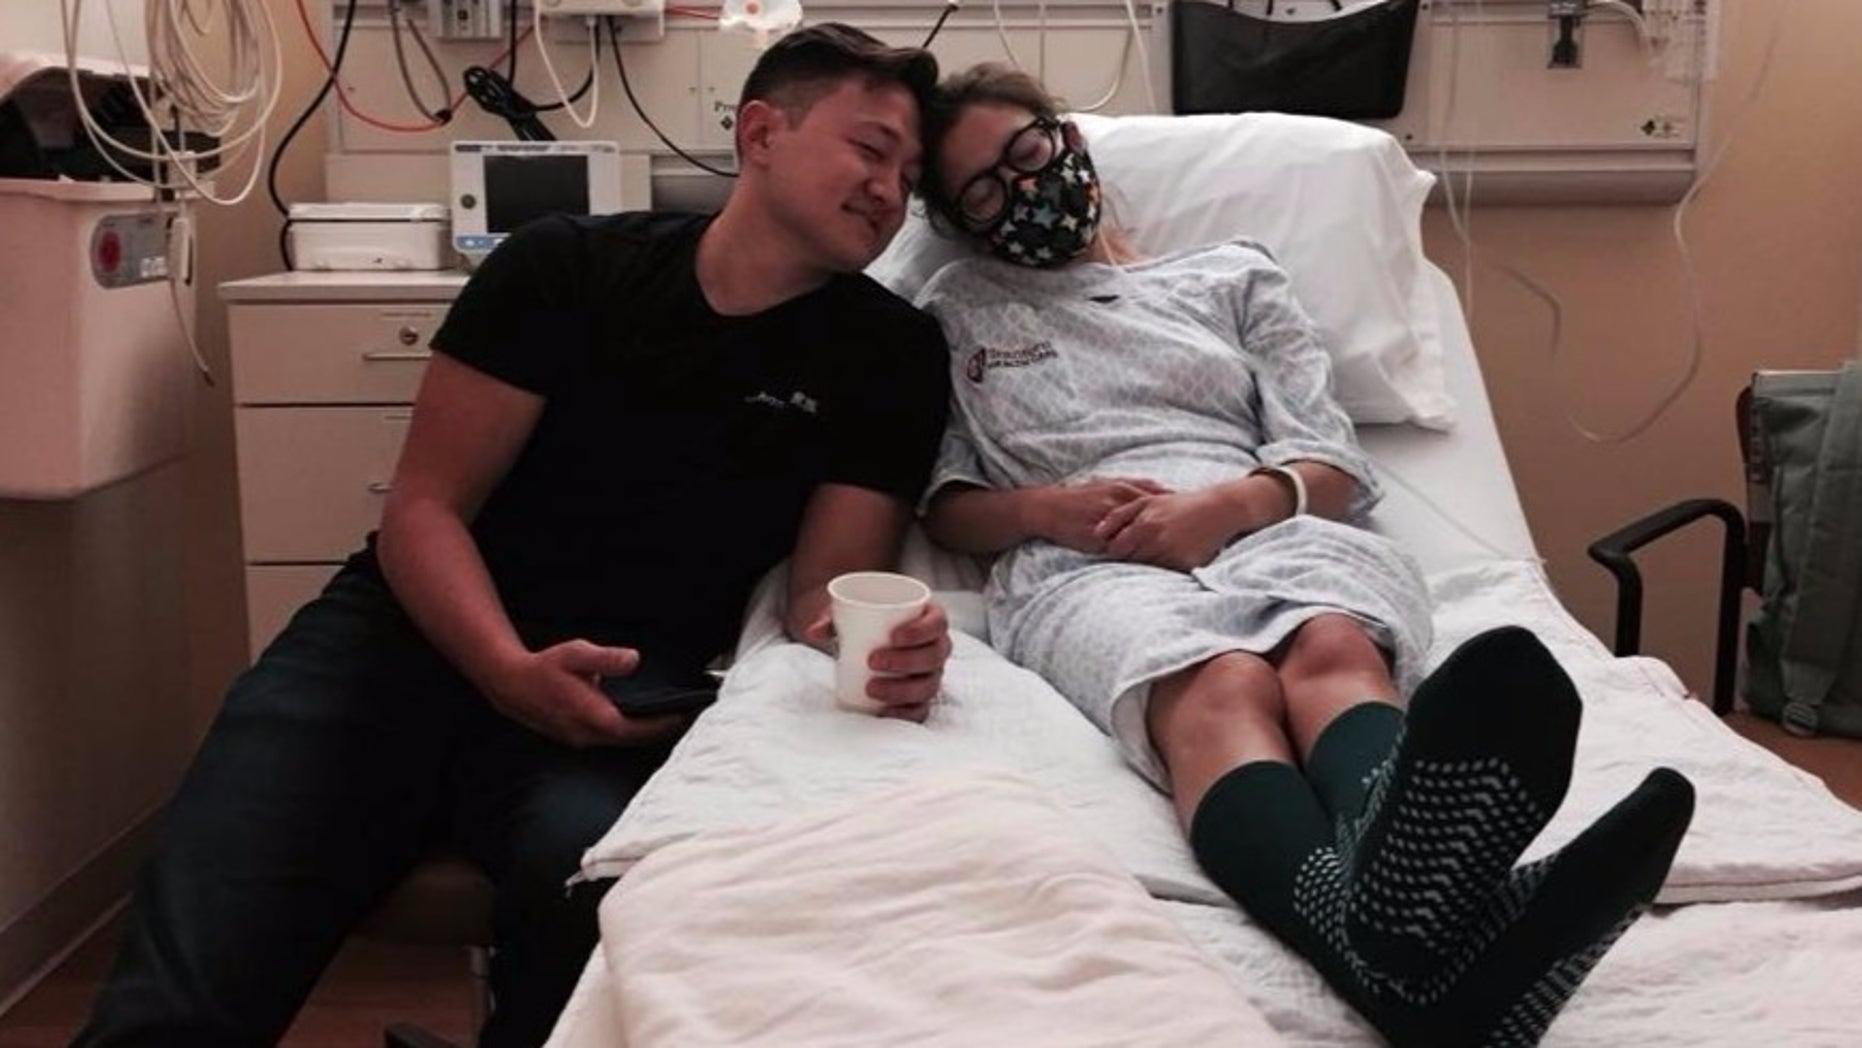 Friends started a GoFundMe page for the pair and hope to send them to Hawaii, which Haber's doctors OK'd with the promise of an on-call medical team.